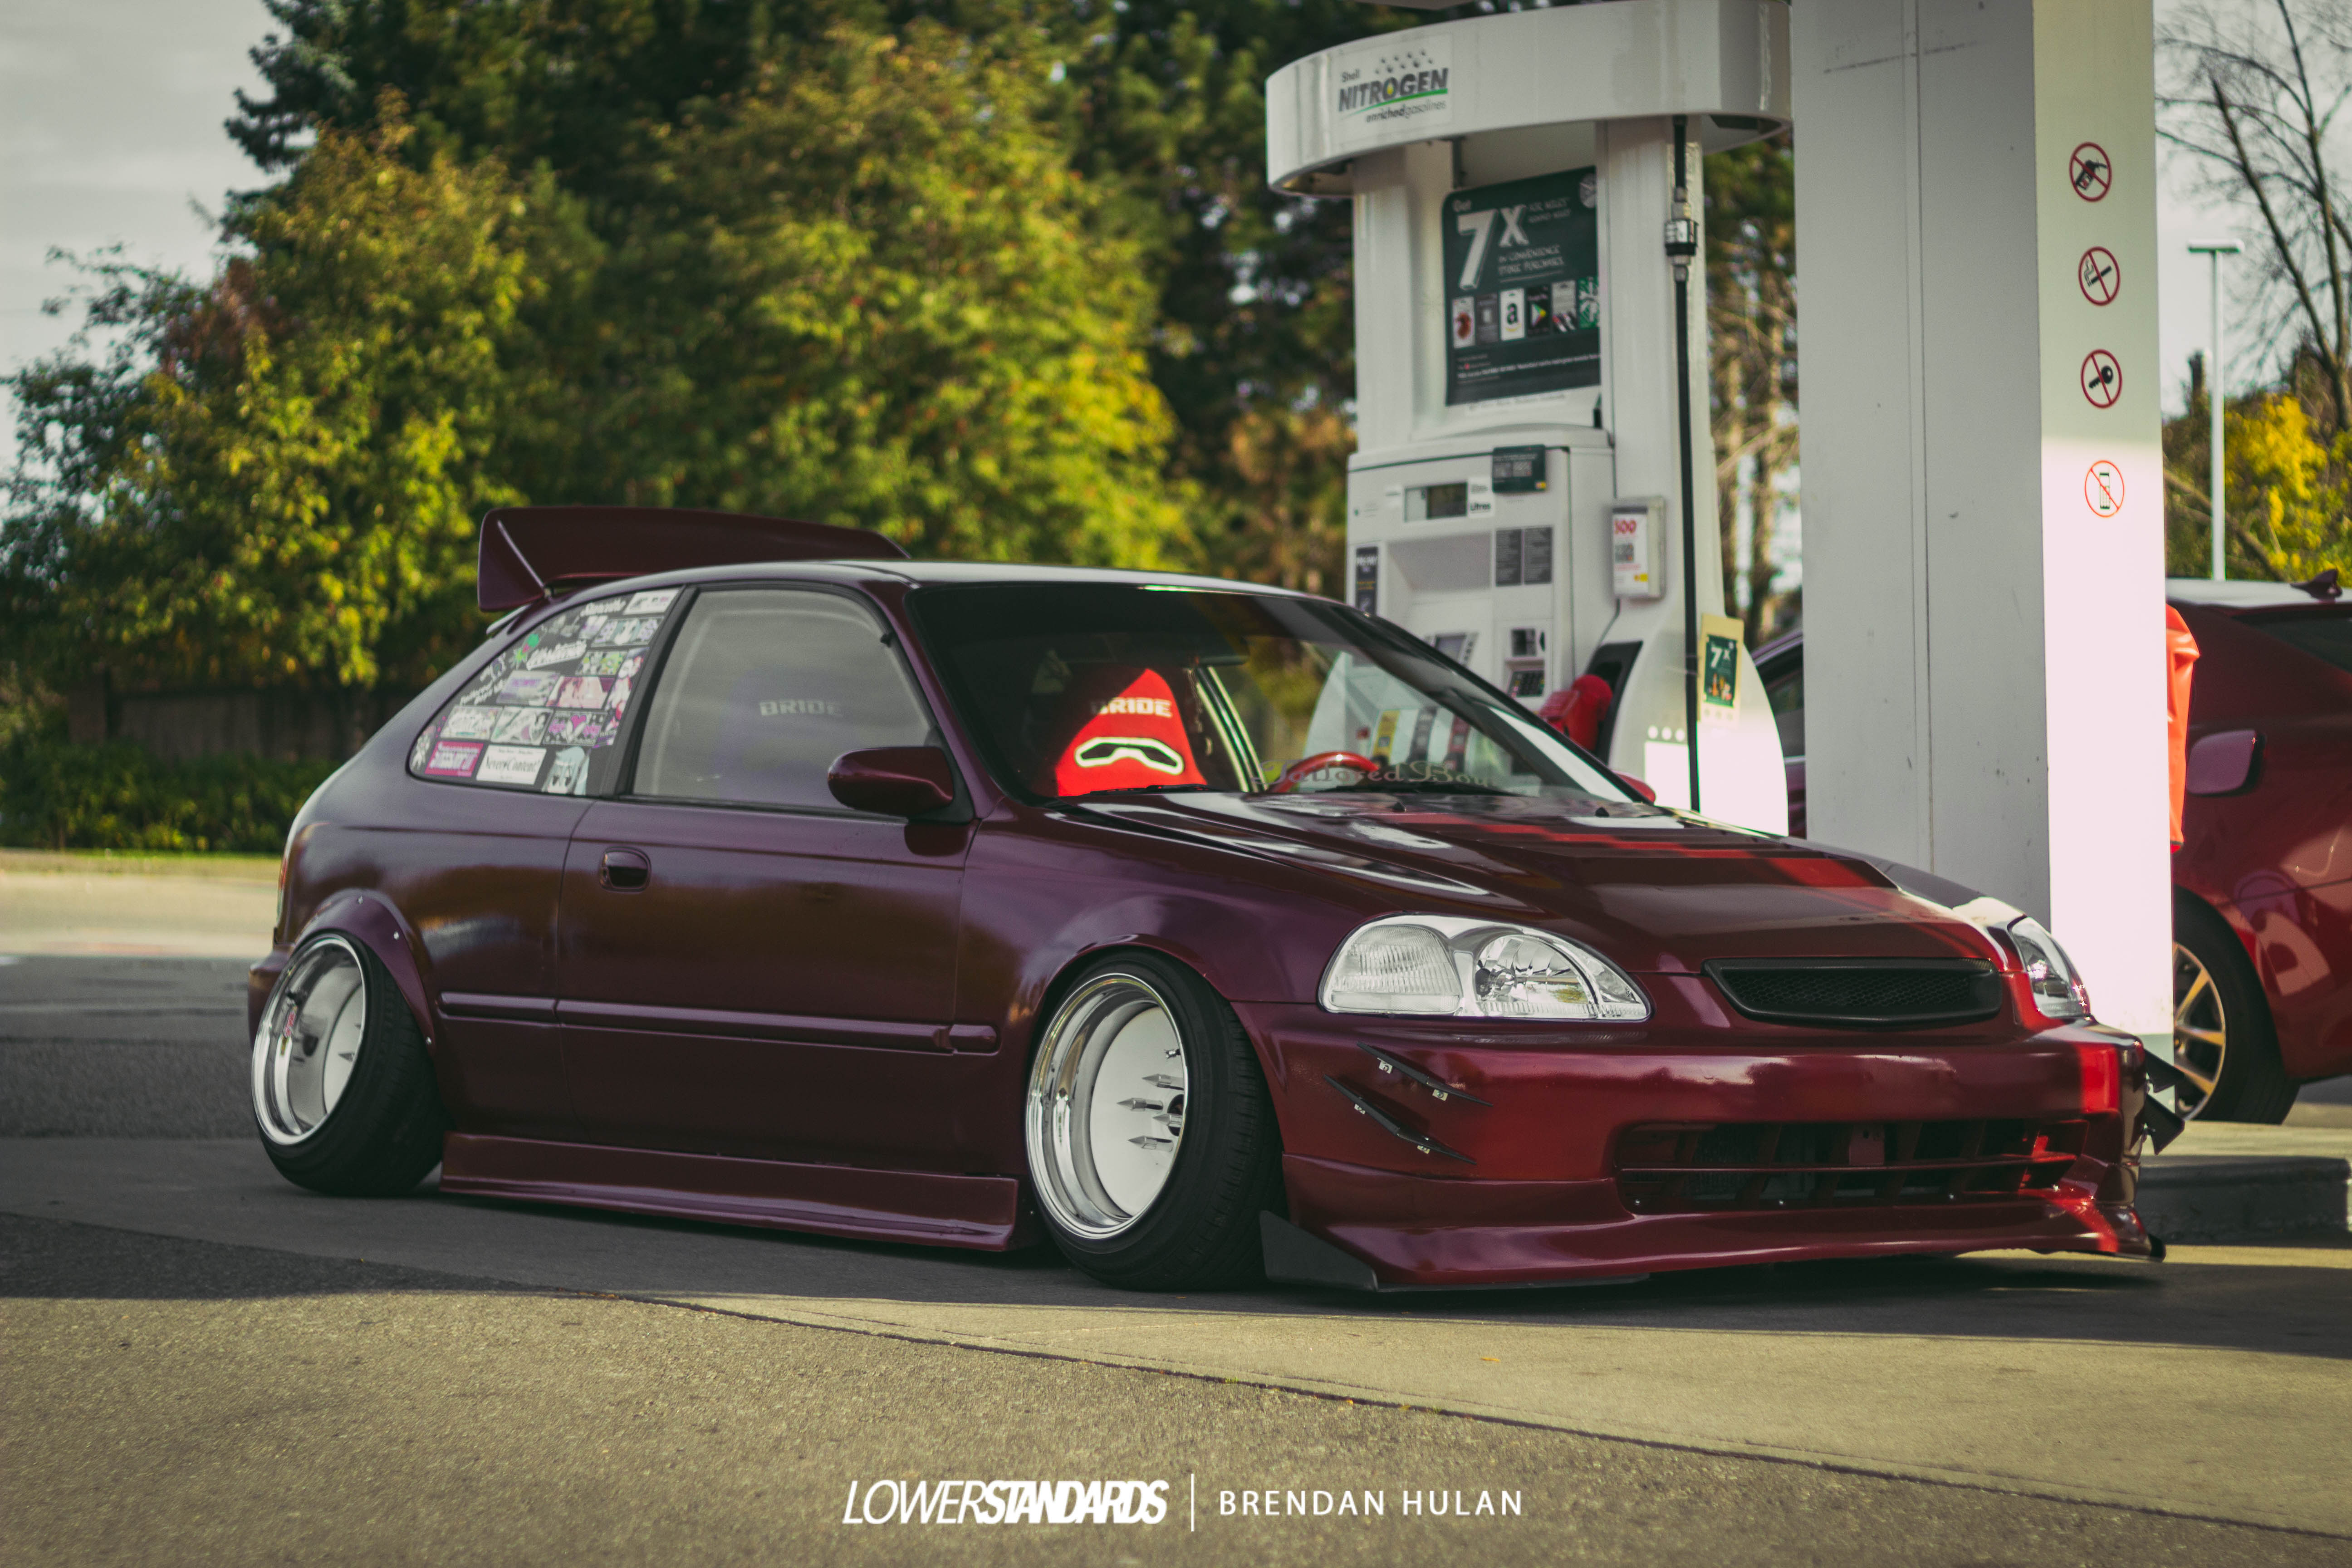 Aarons static civic hatchback lower standardslower standards aarons static civic hatchback publicscrutiny Images